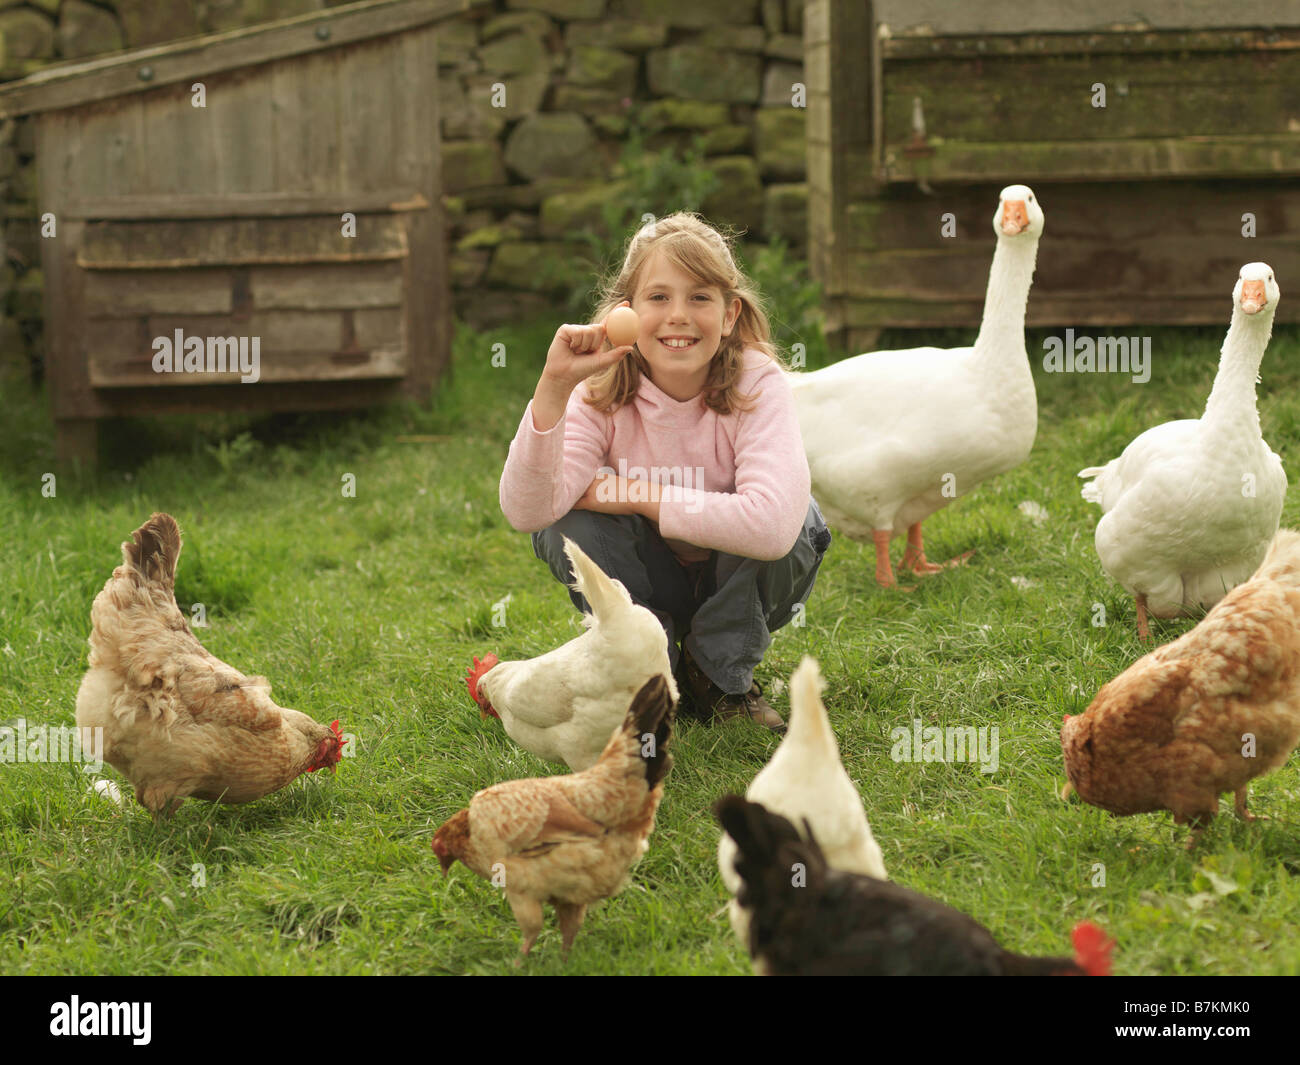 Girl Holding Egg With Hens And Geese Stock Photo